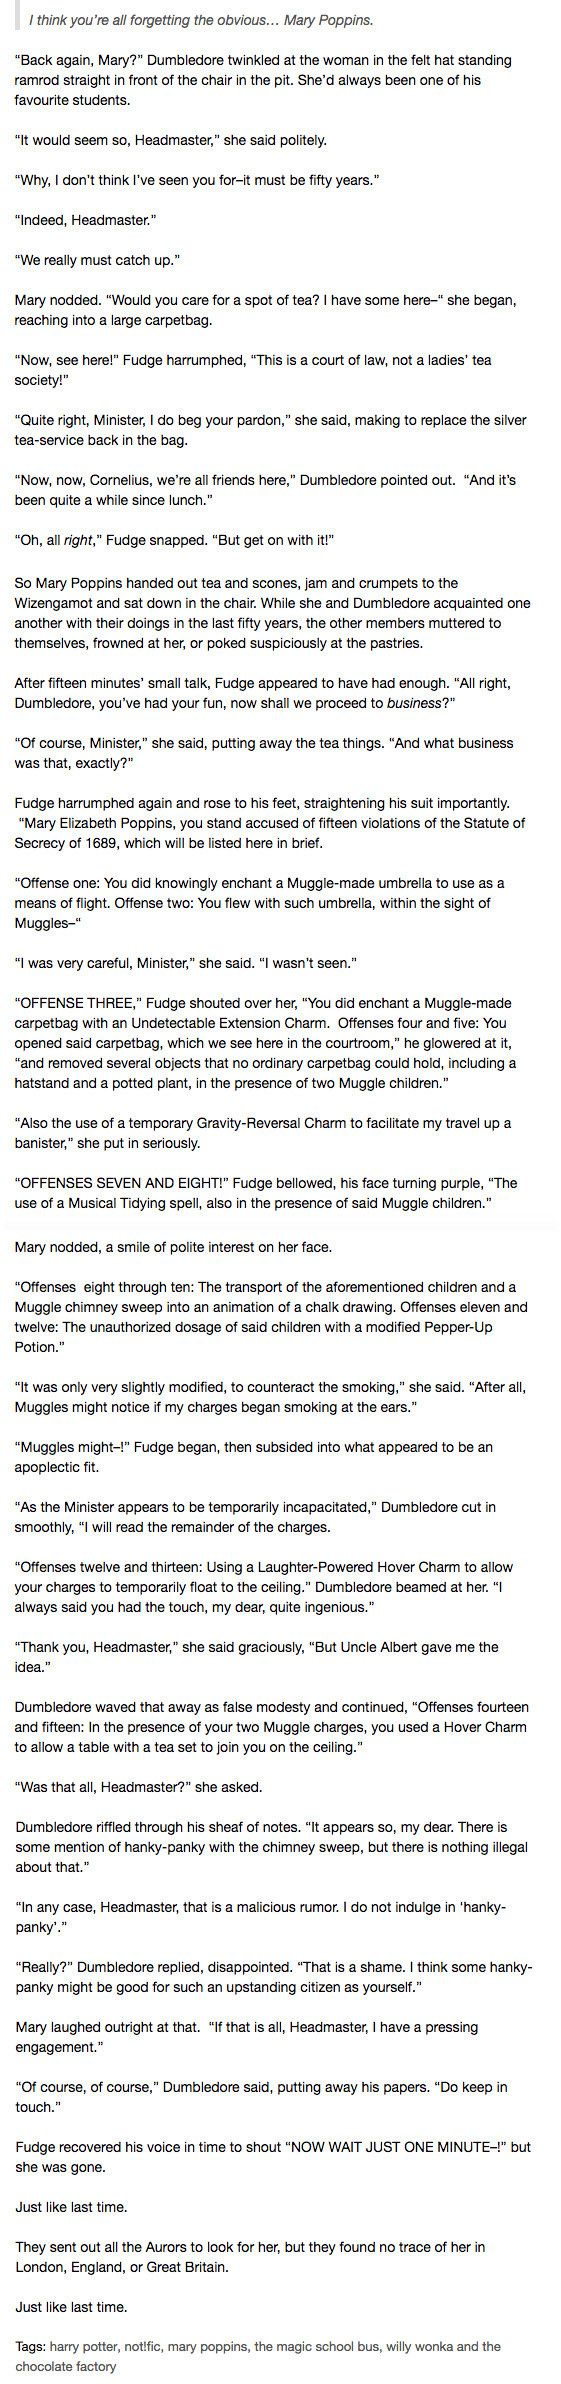 Well, here's one last bit of writing from Tumblr user Mithrel: | Tumblr Thinks Mary Poppins and Willy Wonka Belong In Harry Potter And Honestly It's Great